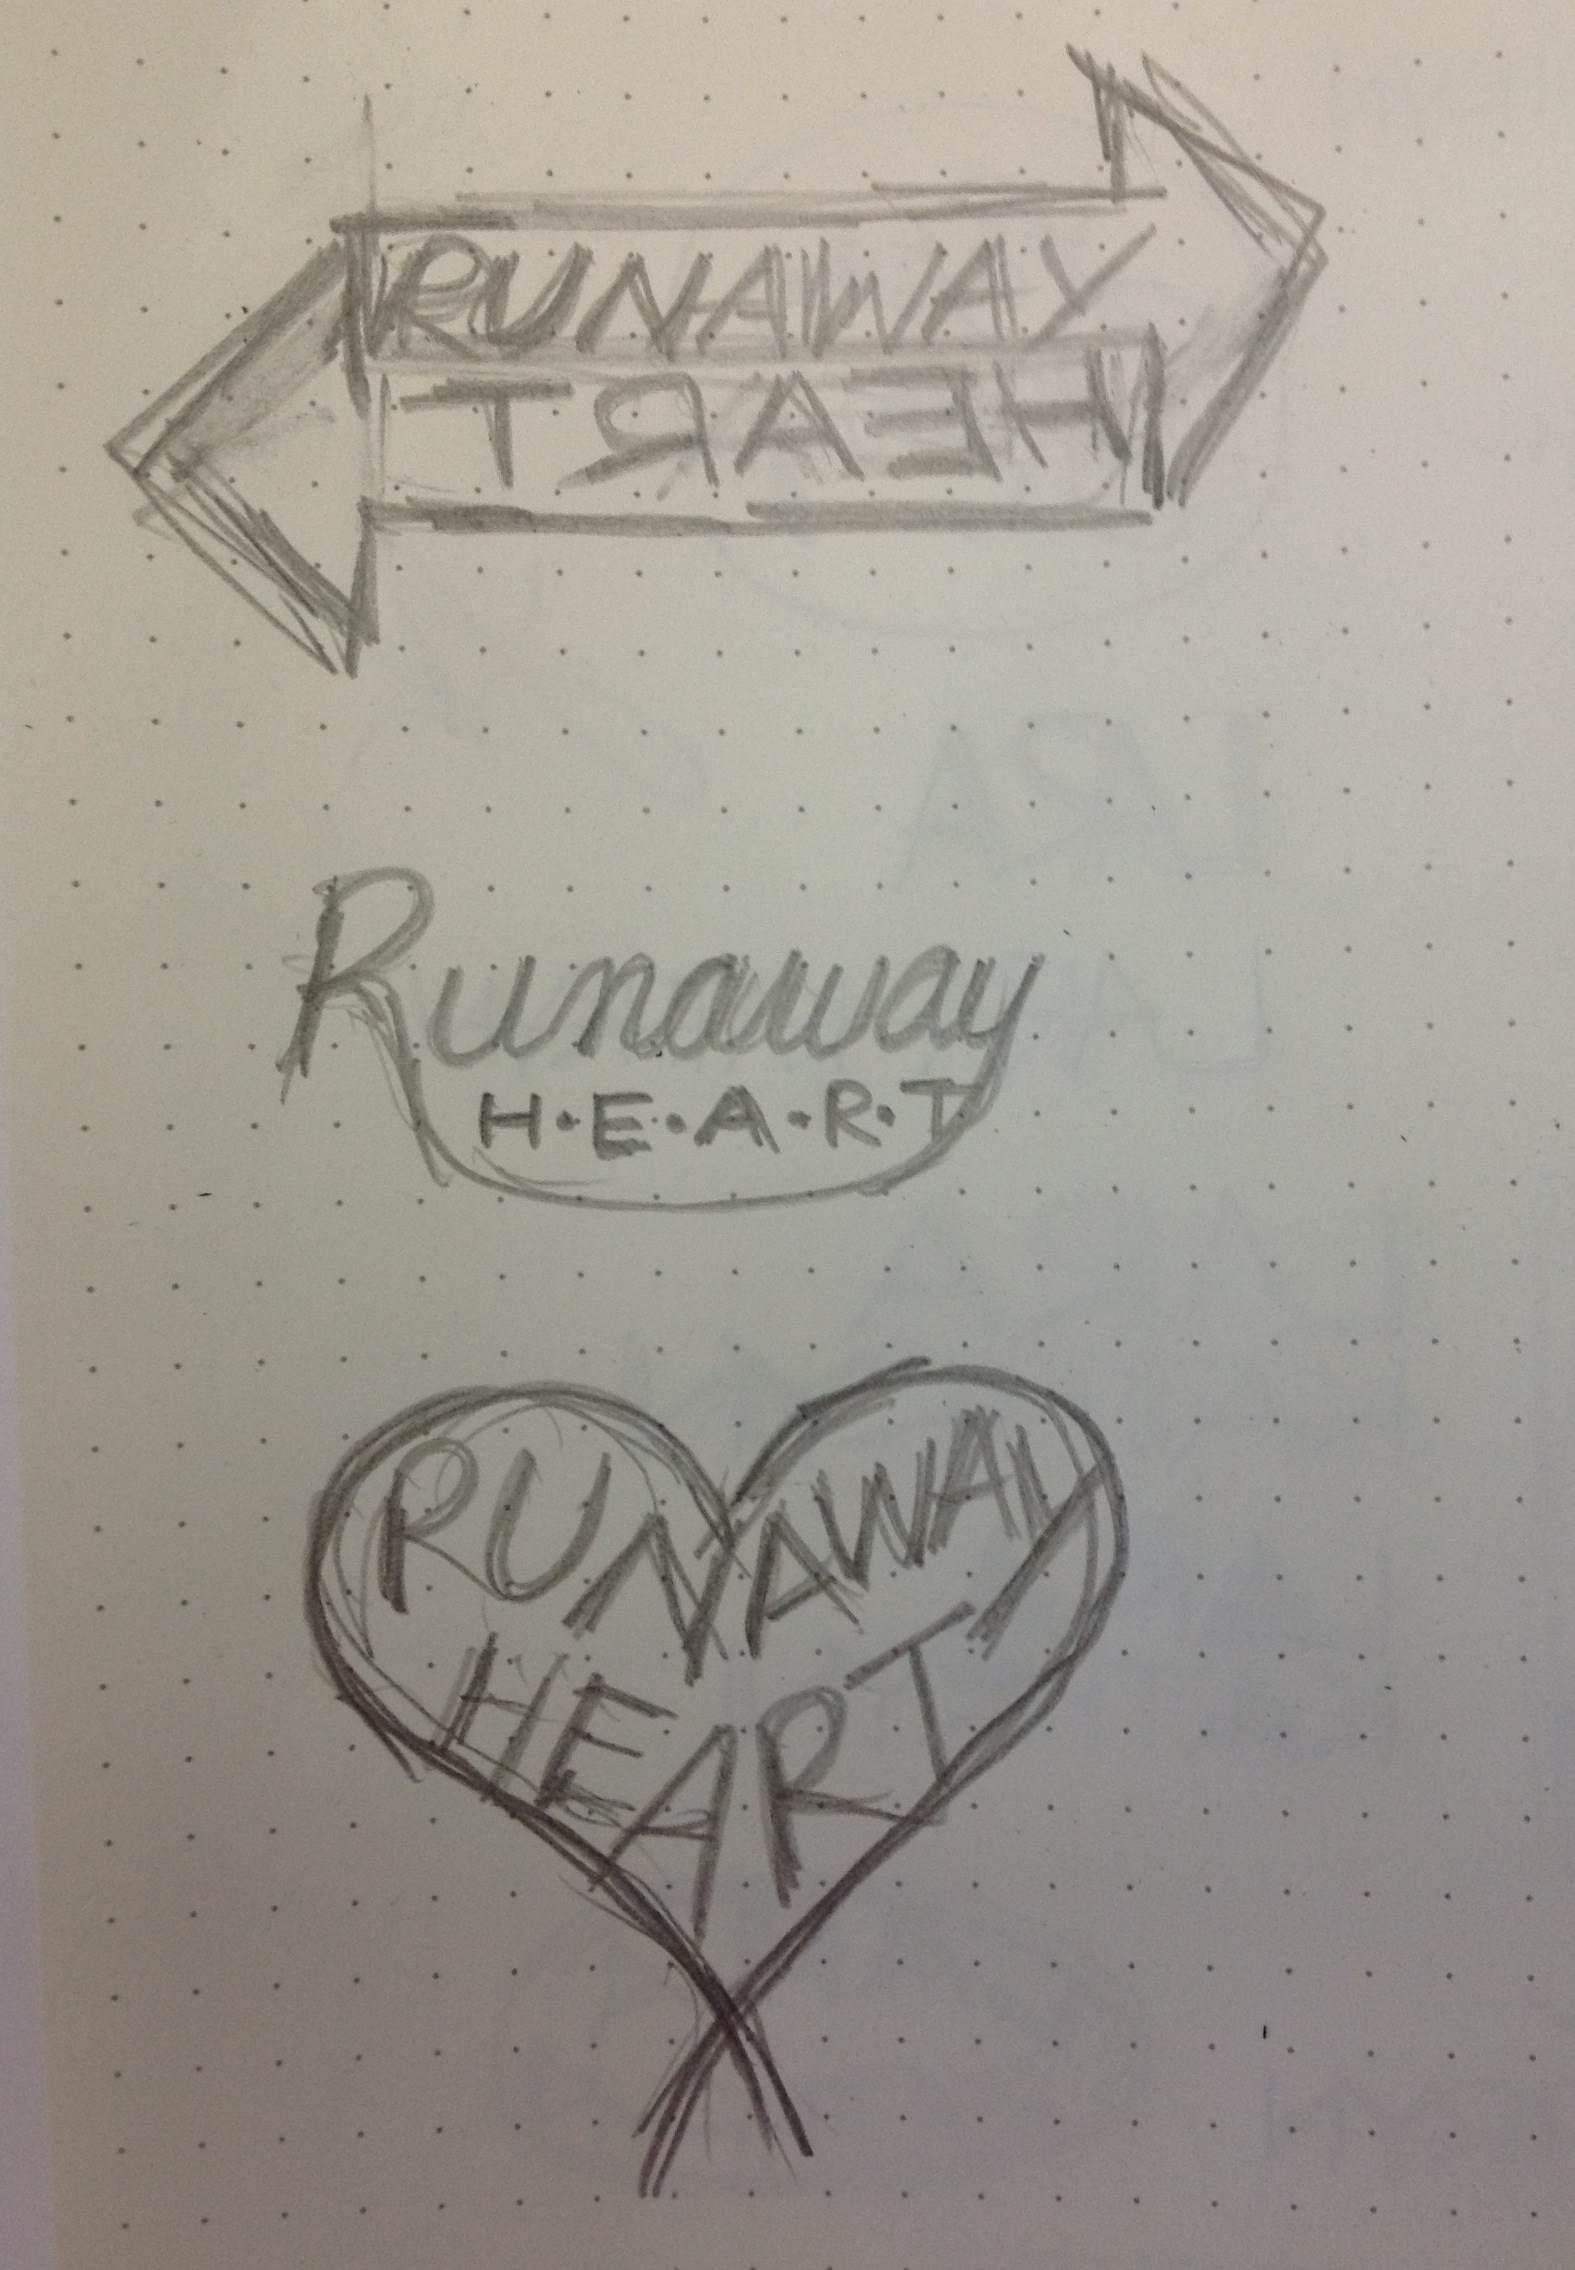 Runaway Heart - image 2 - student project